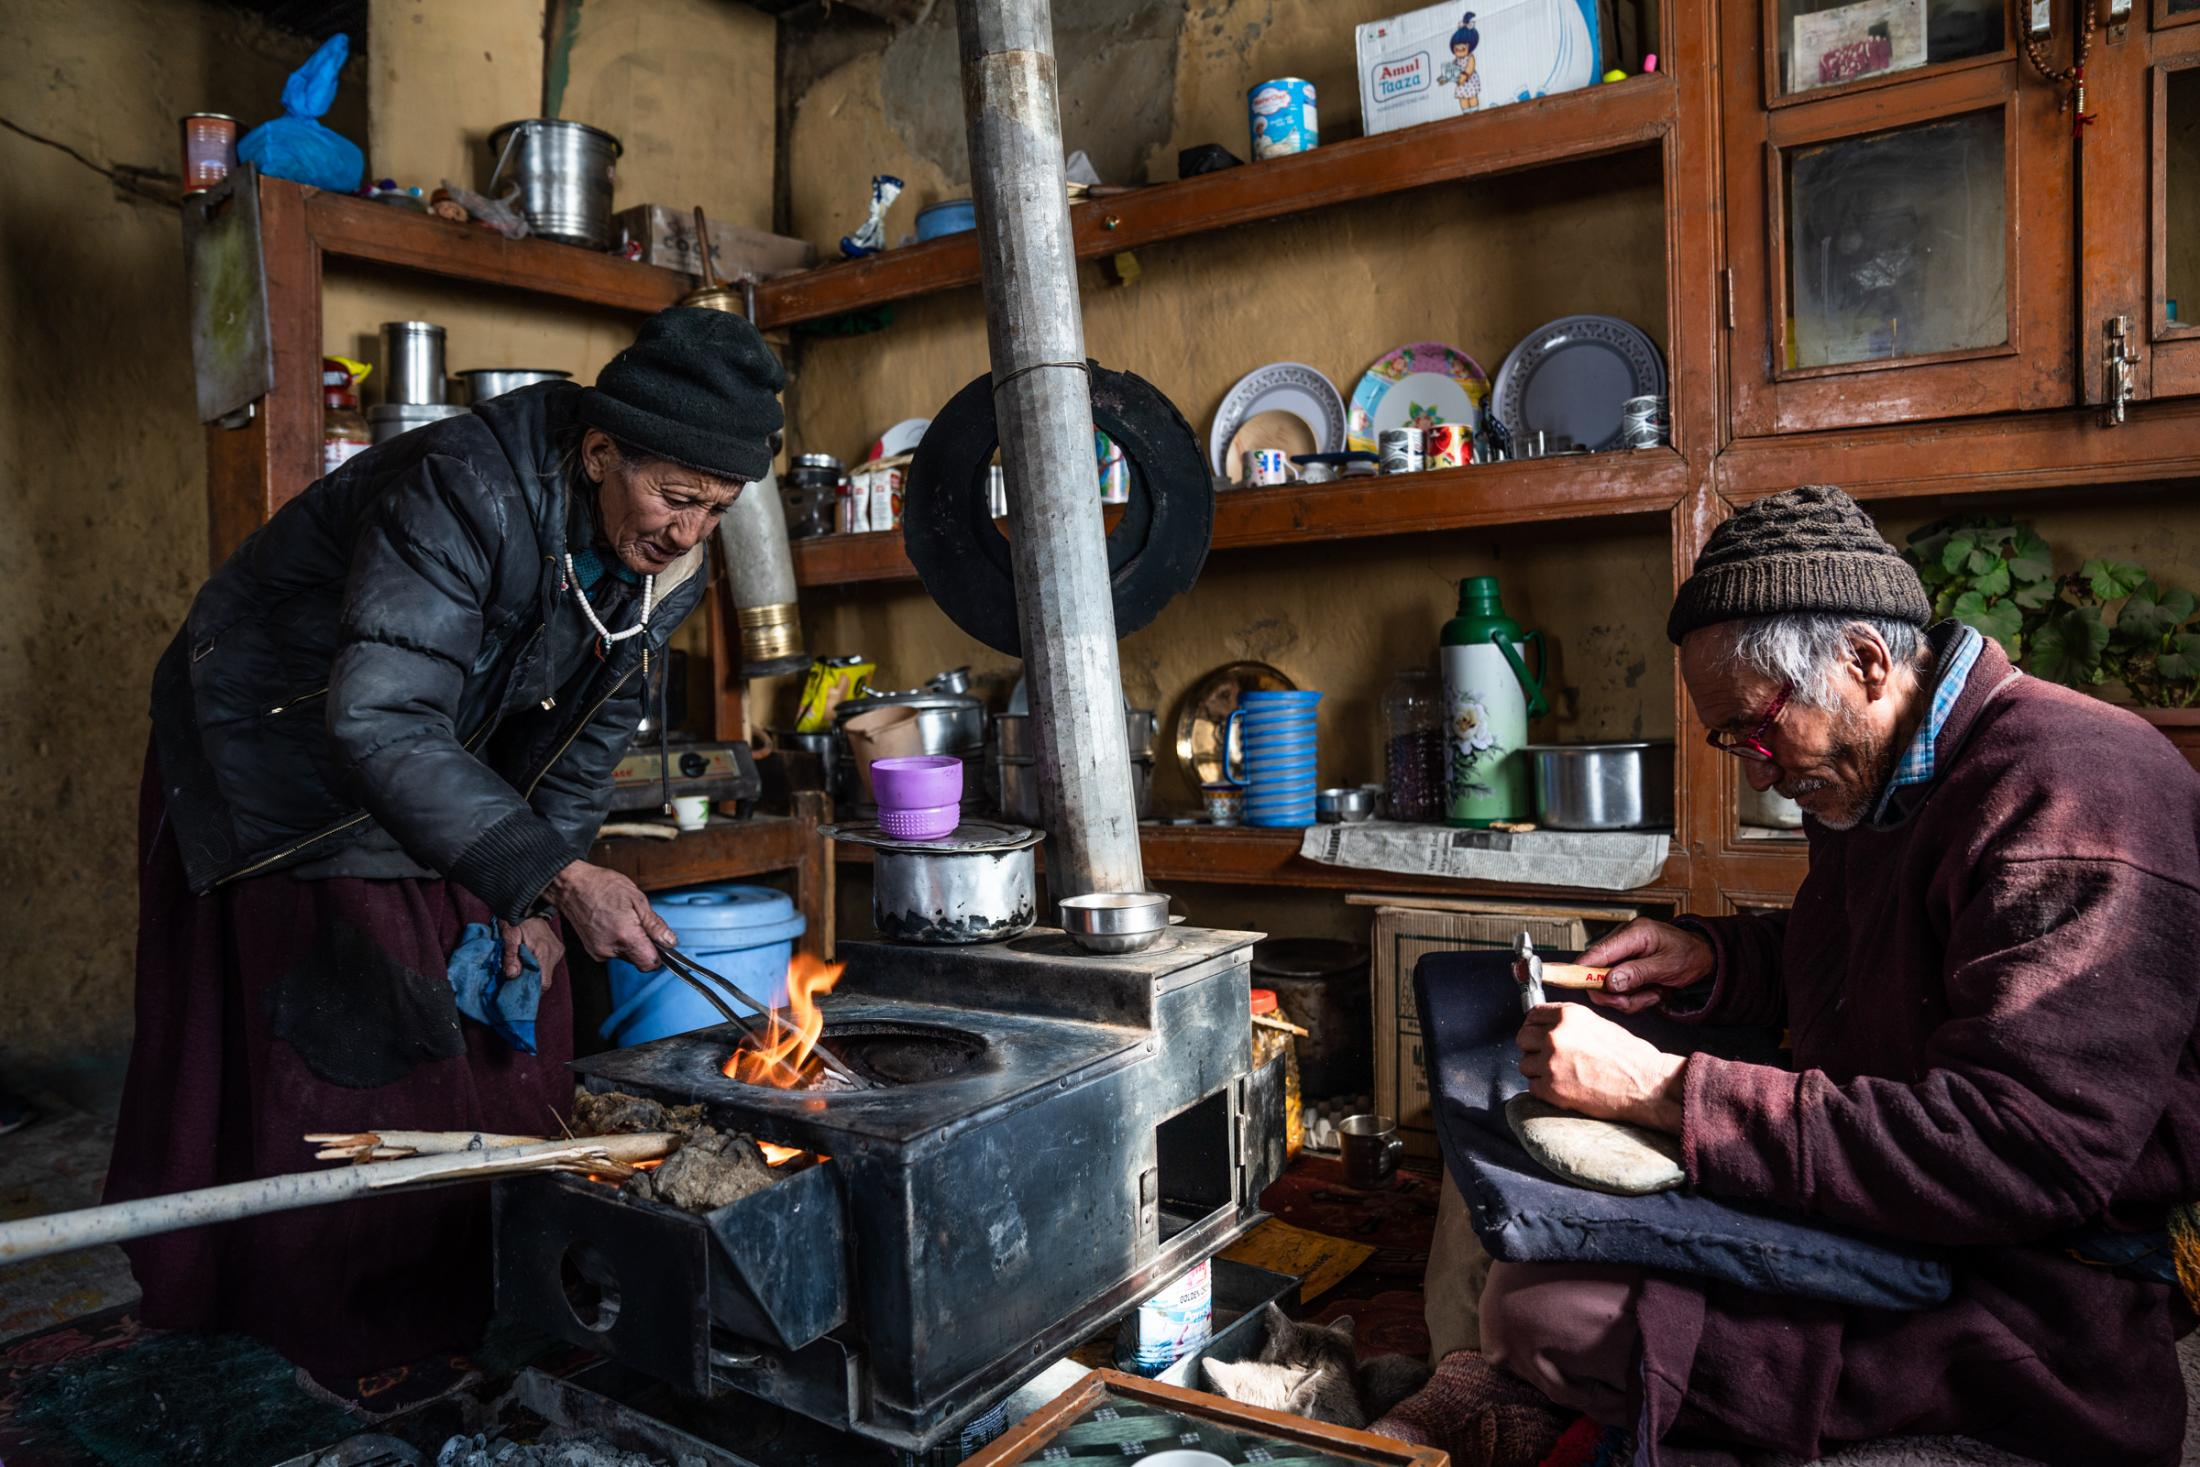 Husband and wife in the winter kitchen.